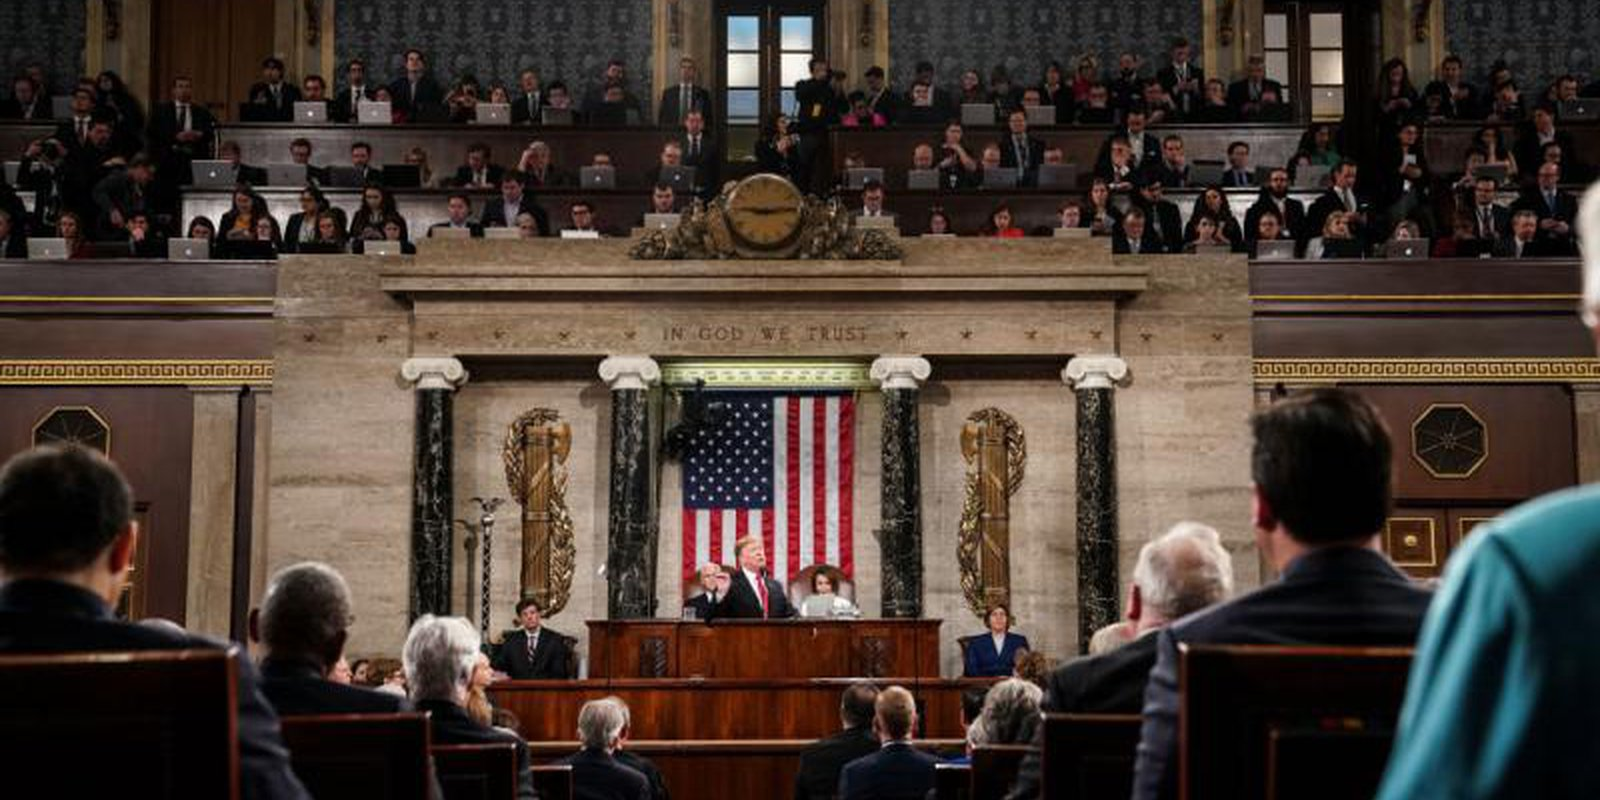 Donald Trump delivers the 2019 State of the Union address. Photo: Getty Images.